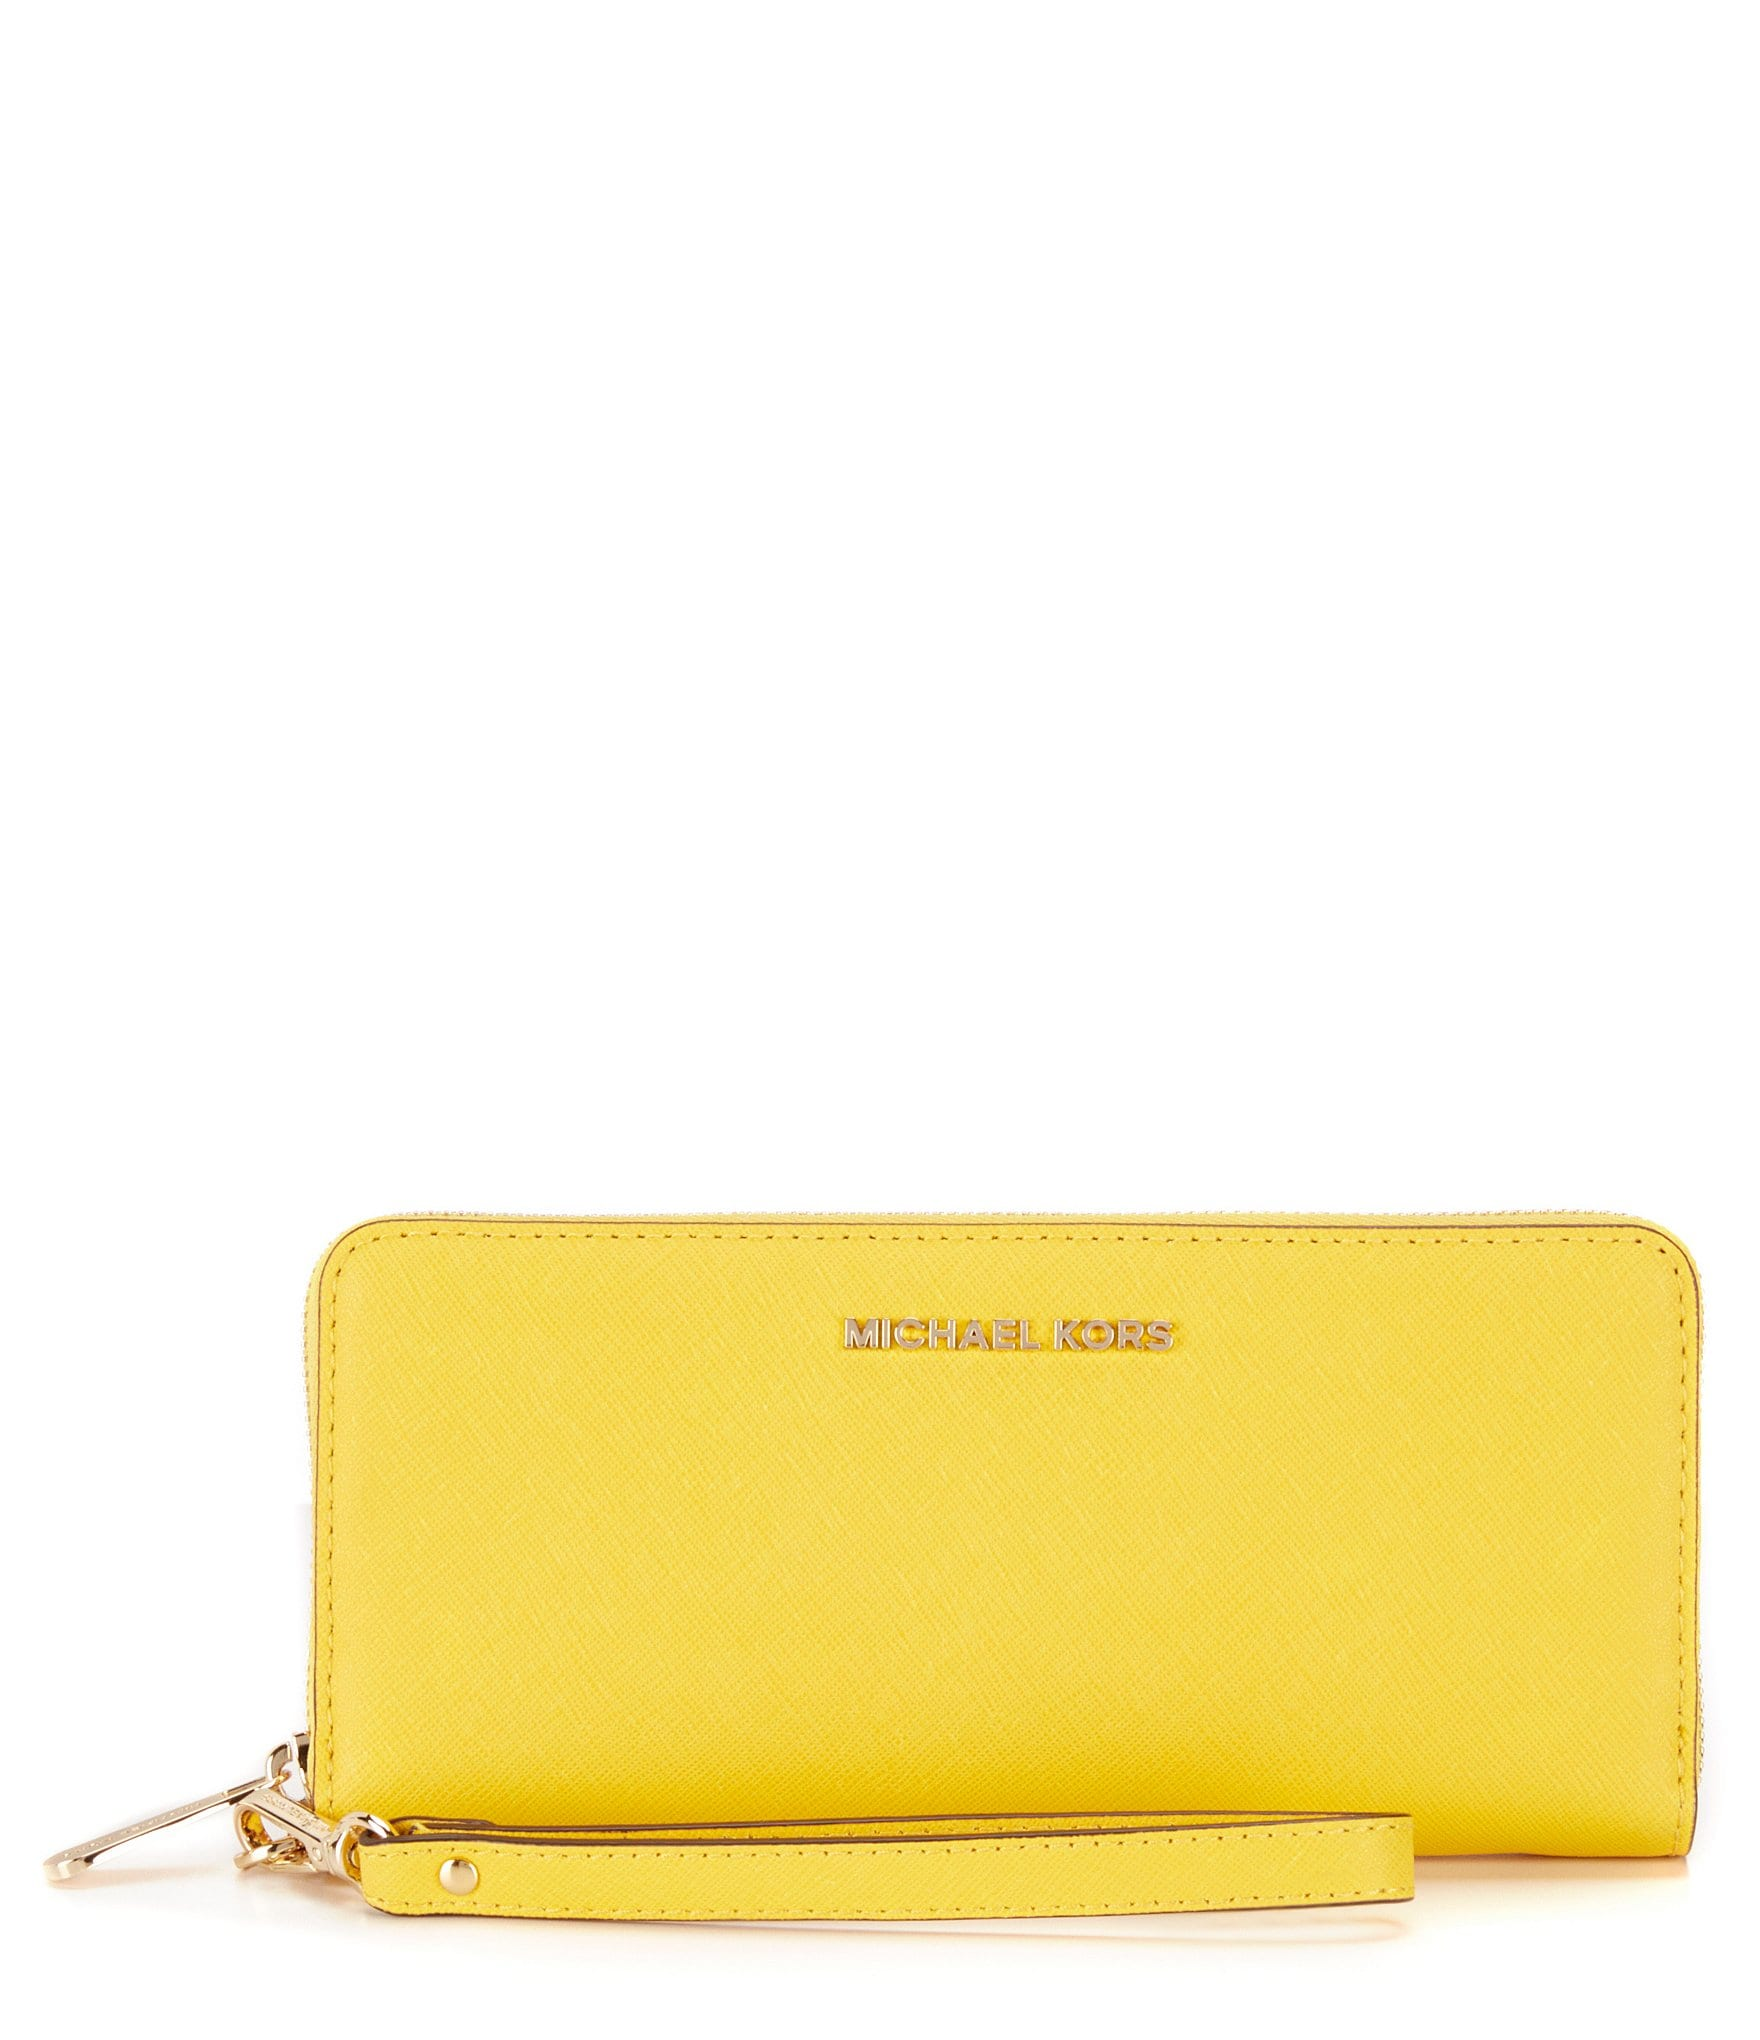 3e5fa651d203 Buy michael kors wallet purse > OFF64% Discounted